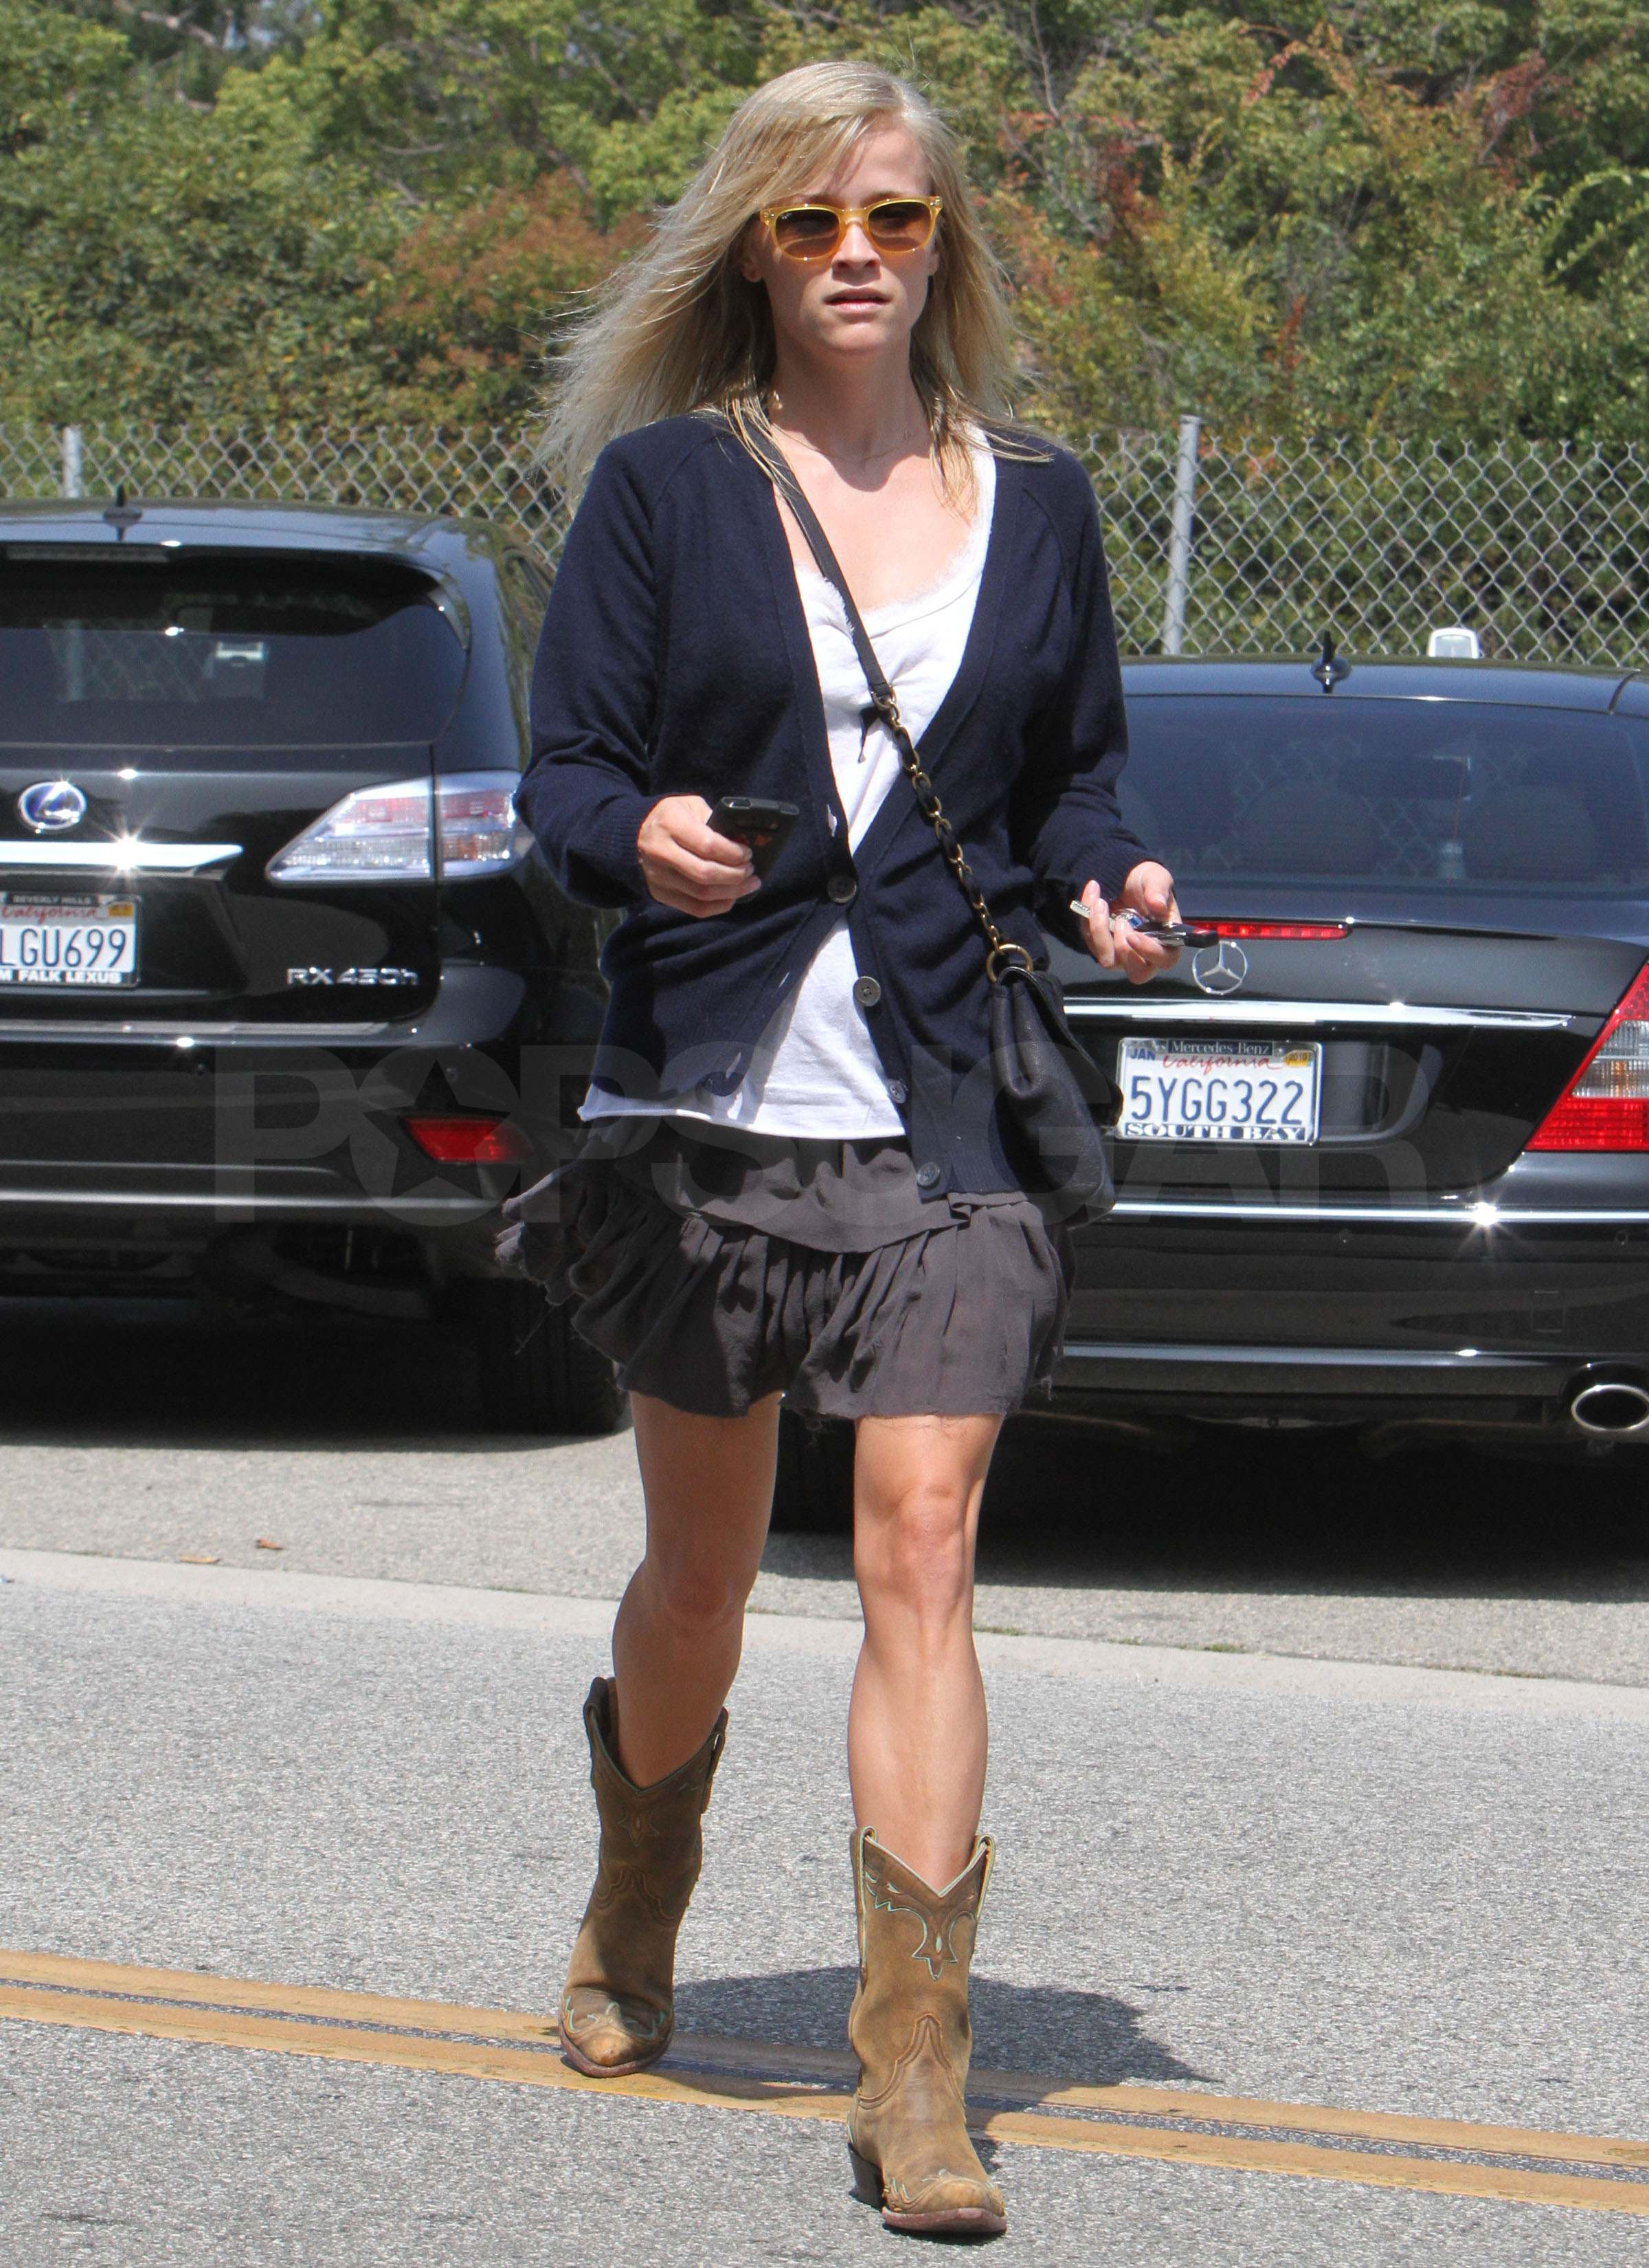 Pictures of Reese Witherspoon Wearing Cowboy Boots in LA ...